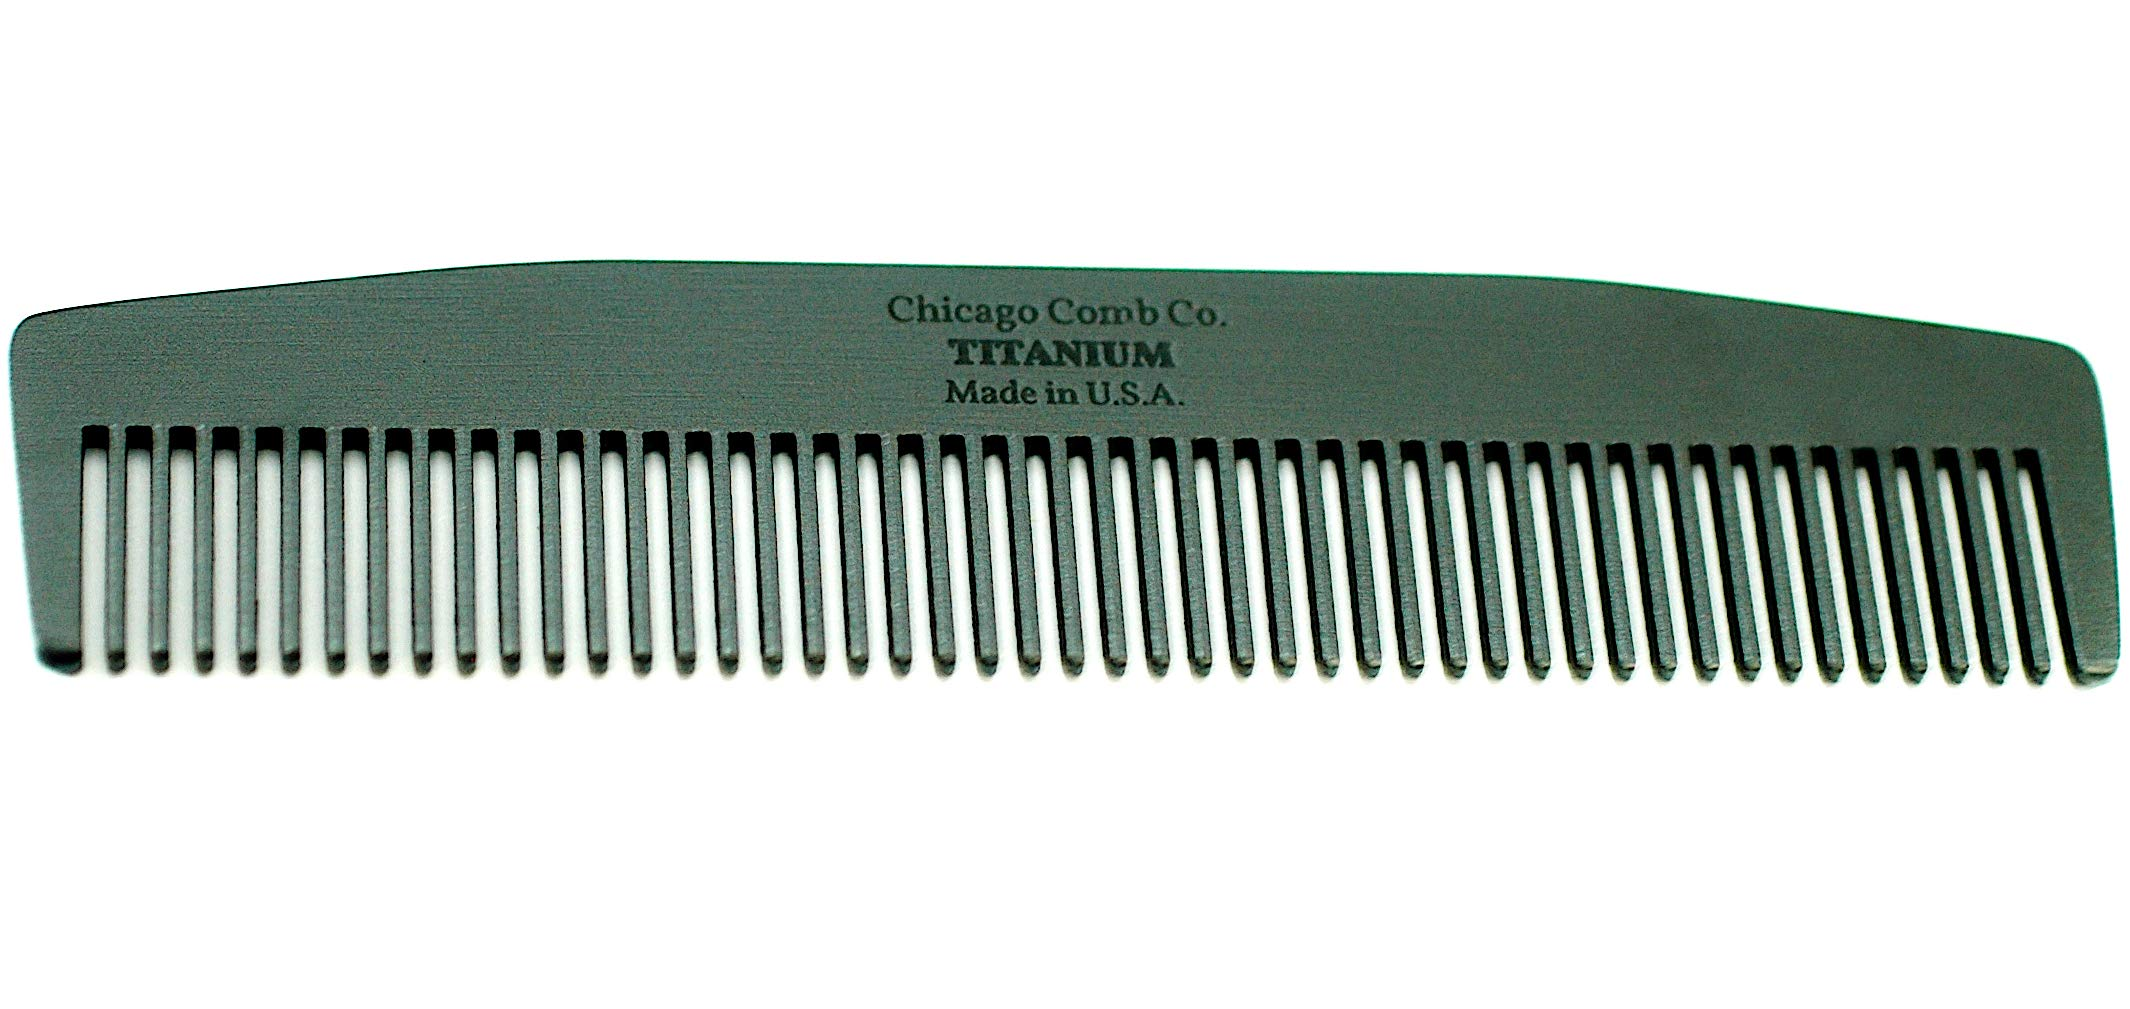 Chicago Comb Model 3 Black Titanium, Made in USA, Ultra-Smooth, Strong, Light, Anti-Static, 5.5 in. (14 cm) Long, Medium-Fine Tines, Ultimate Daily Use, Pocket, Travel Comb, Pure American Titanium by Chicago Comb